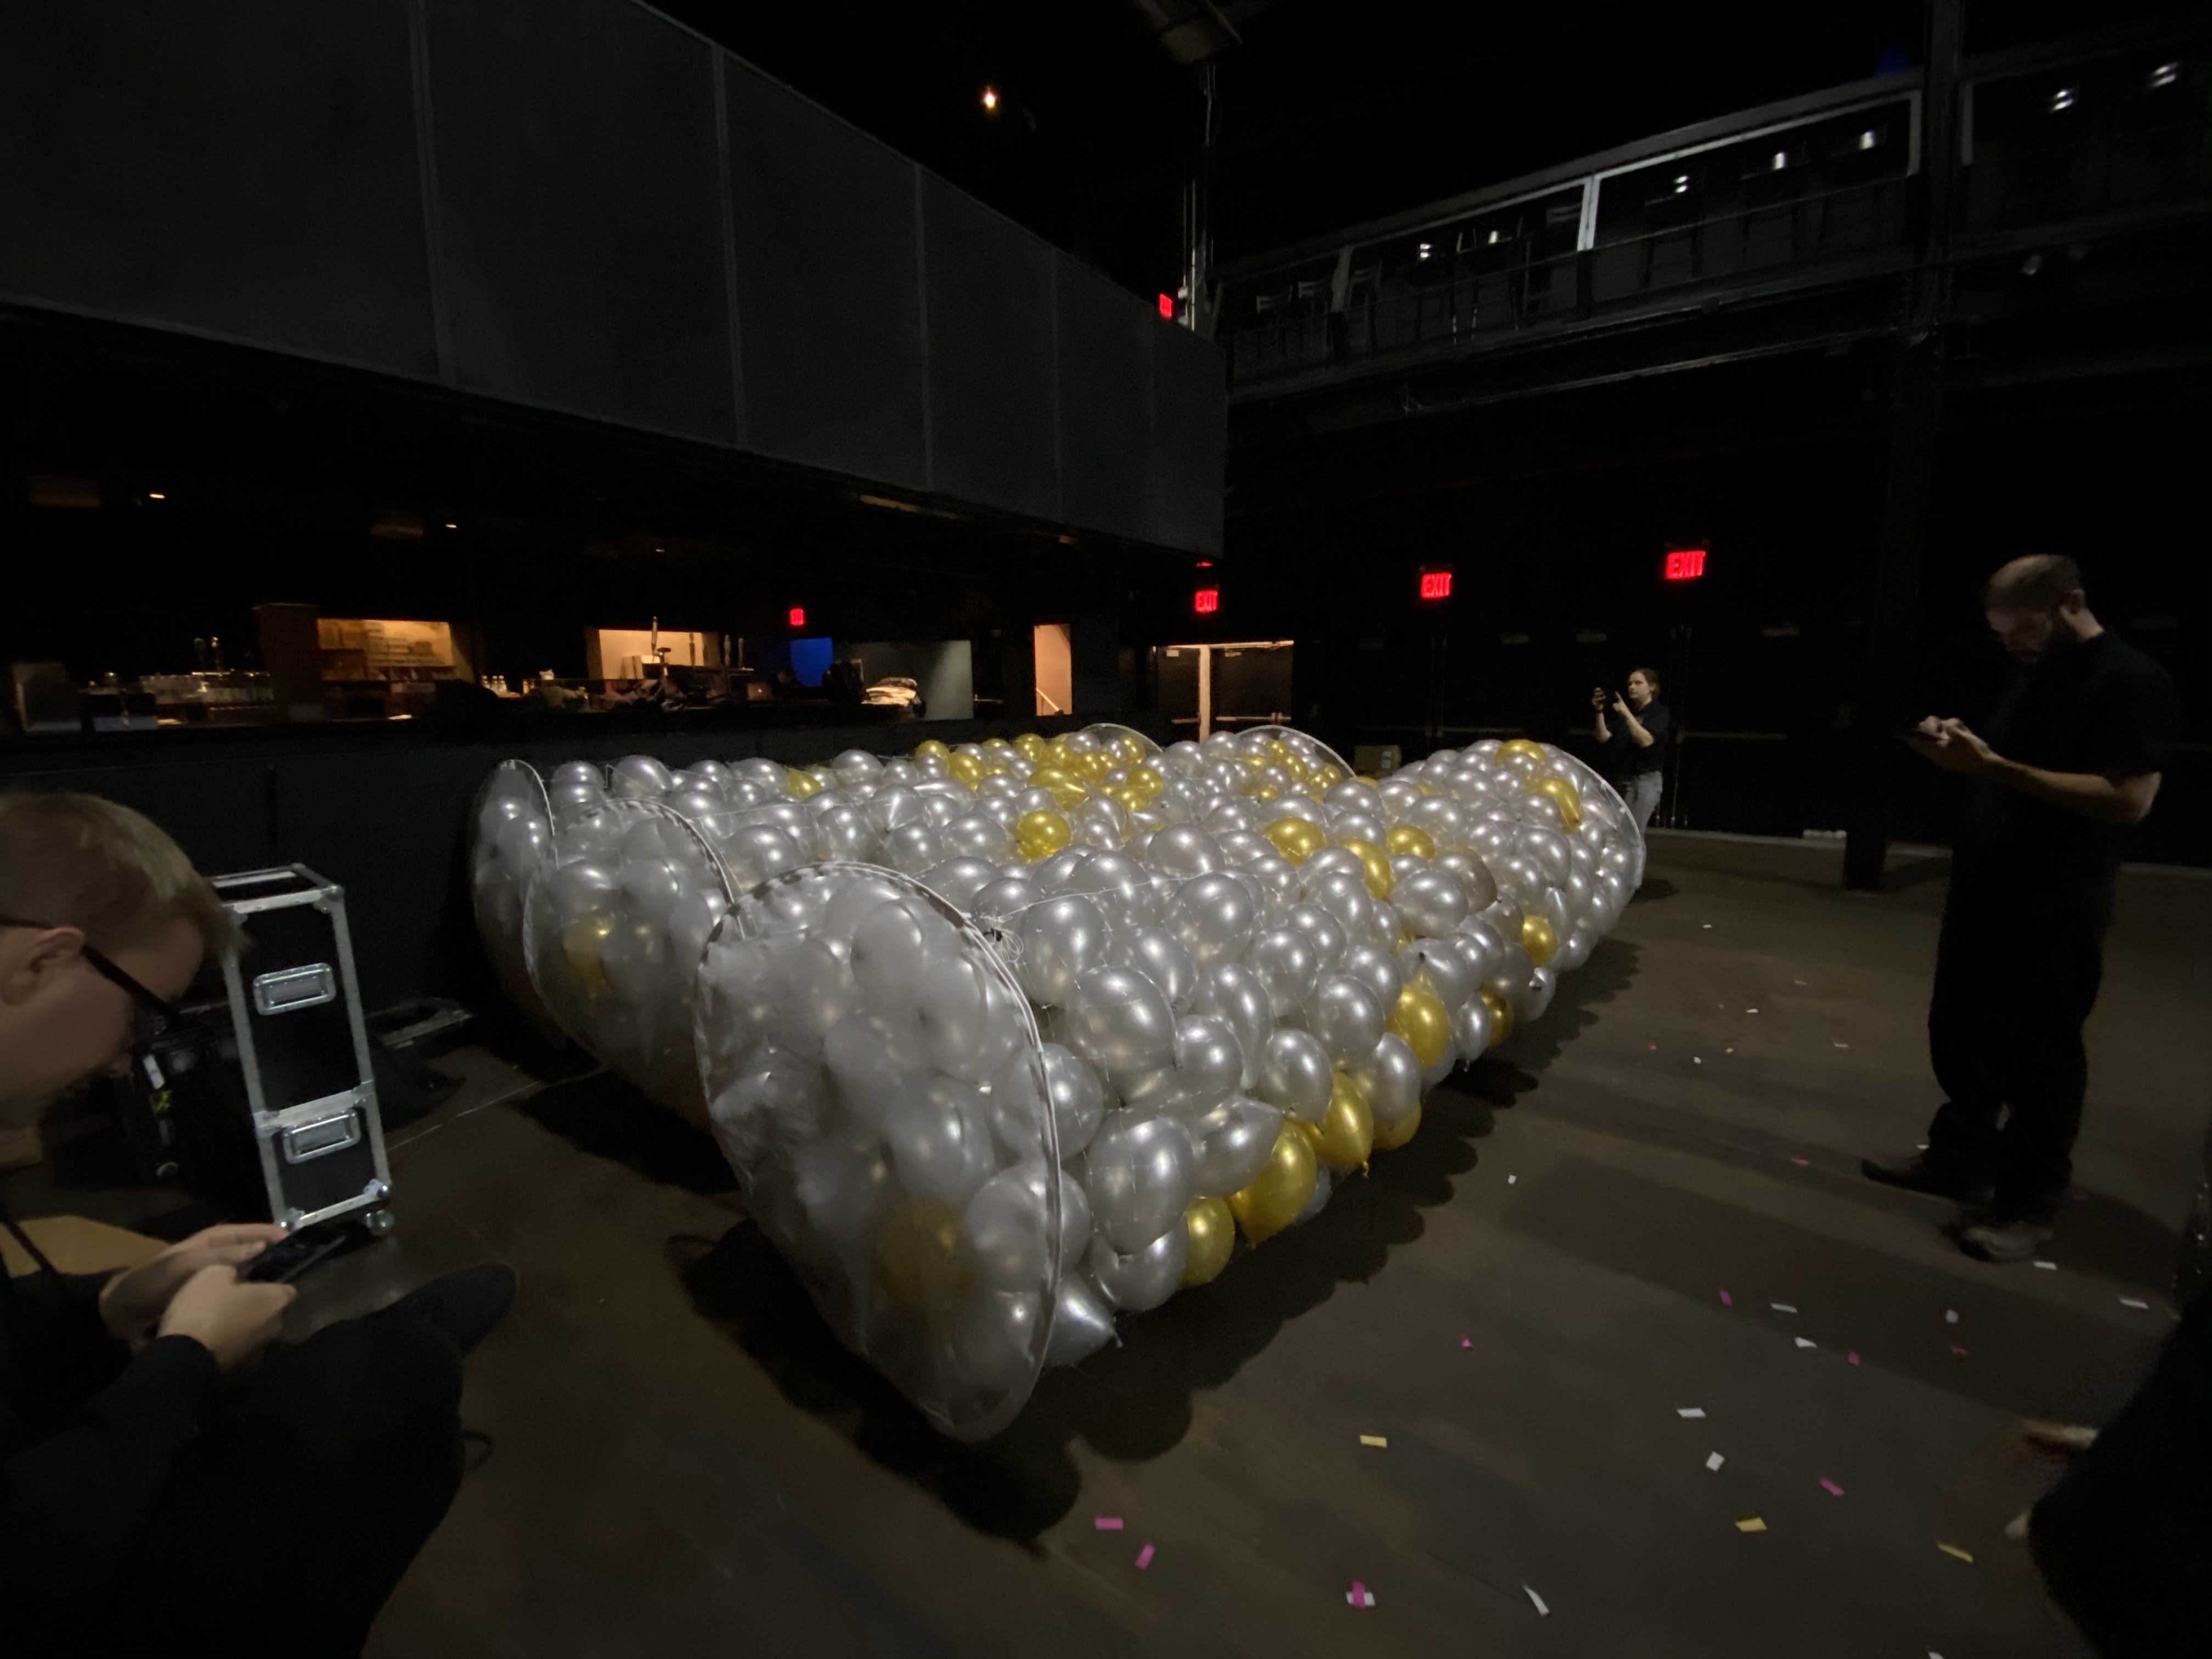 setting up a balloon drop for party